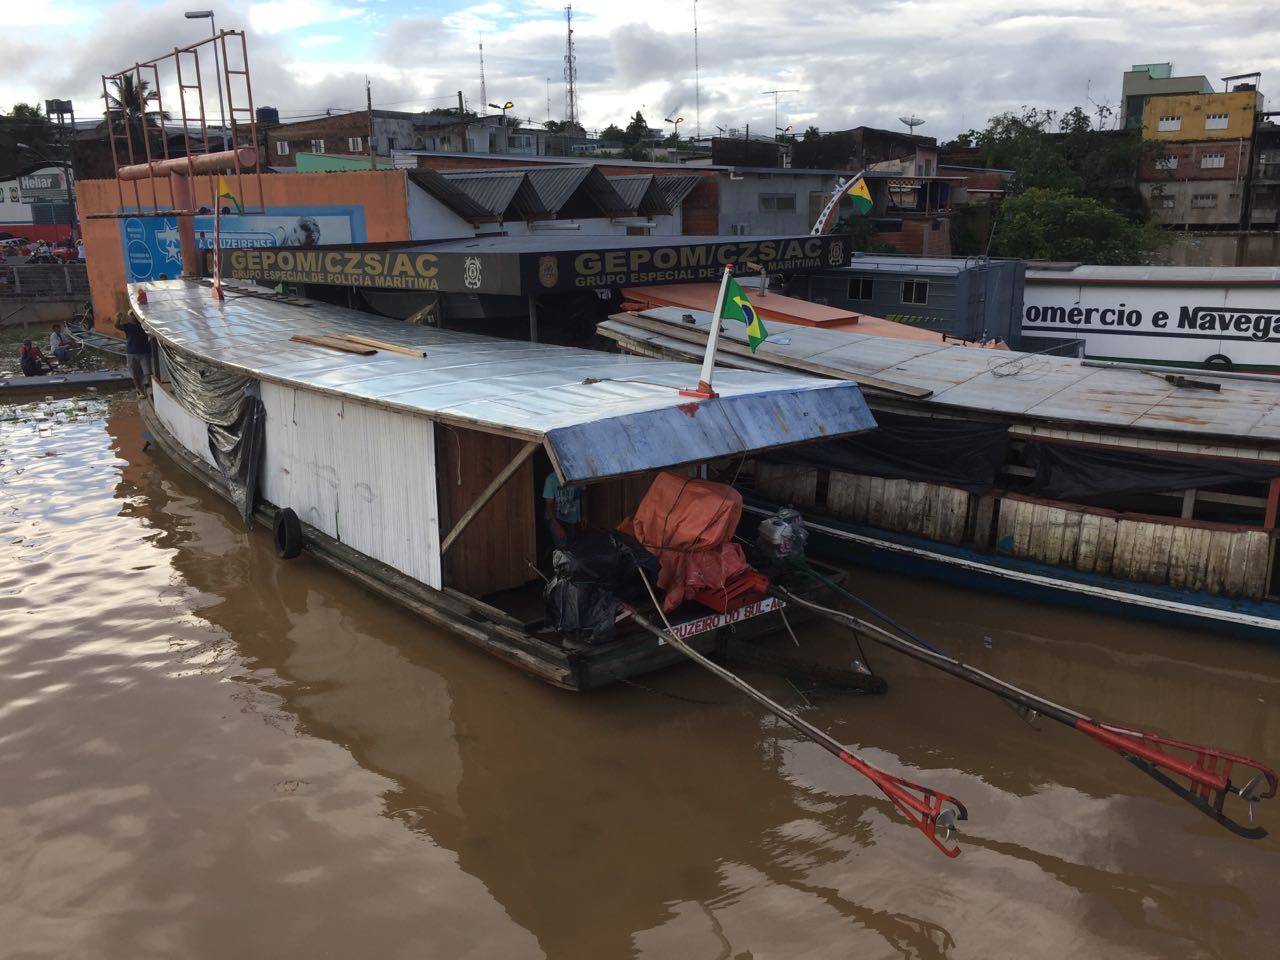 Our 2nd boat - for supplies